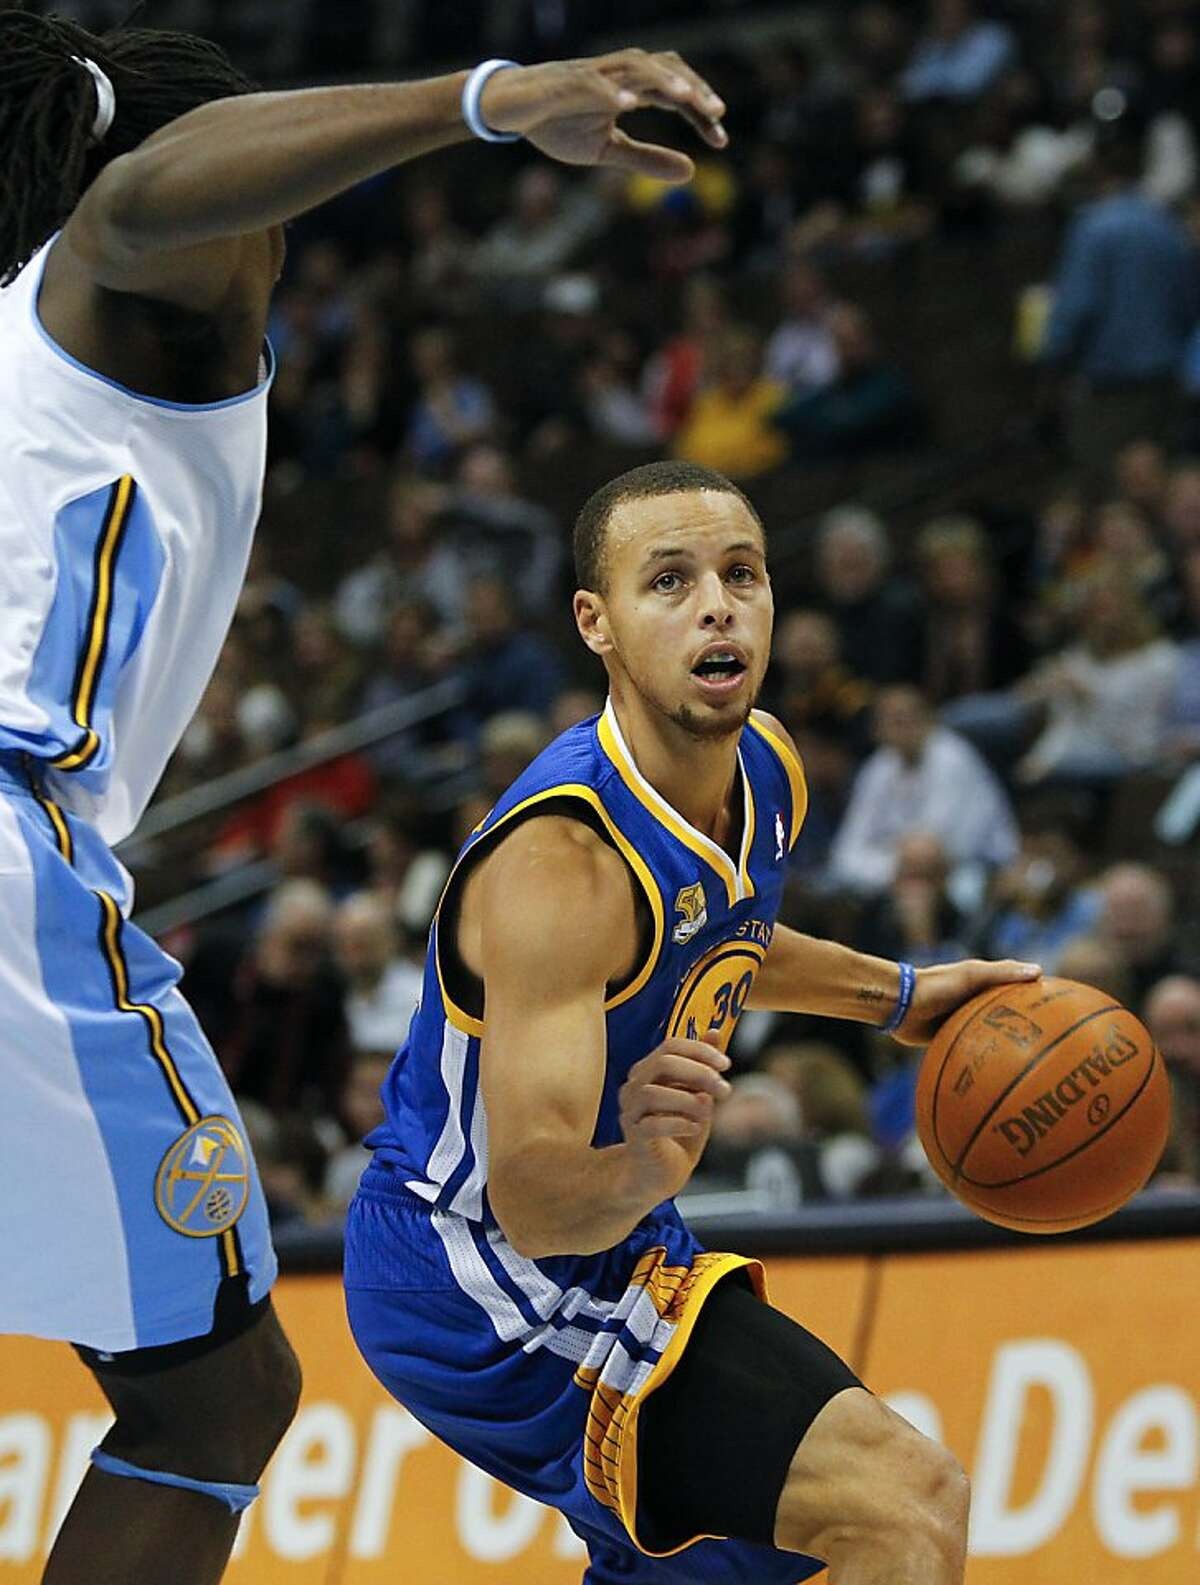 Golden State Warriors guard Stephen Curry (30) drives past Denver Nuggets forward Kenneth Faried (35) during the first quarter of an NBA basketball game Thursday, Feb. 9, 2012, in Denver. (AP Photo/Barry Gutierrez)